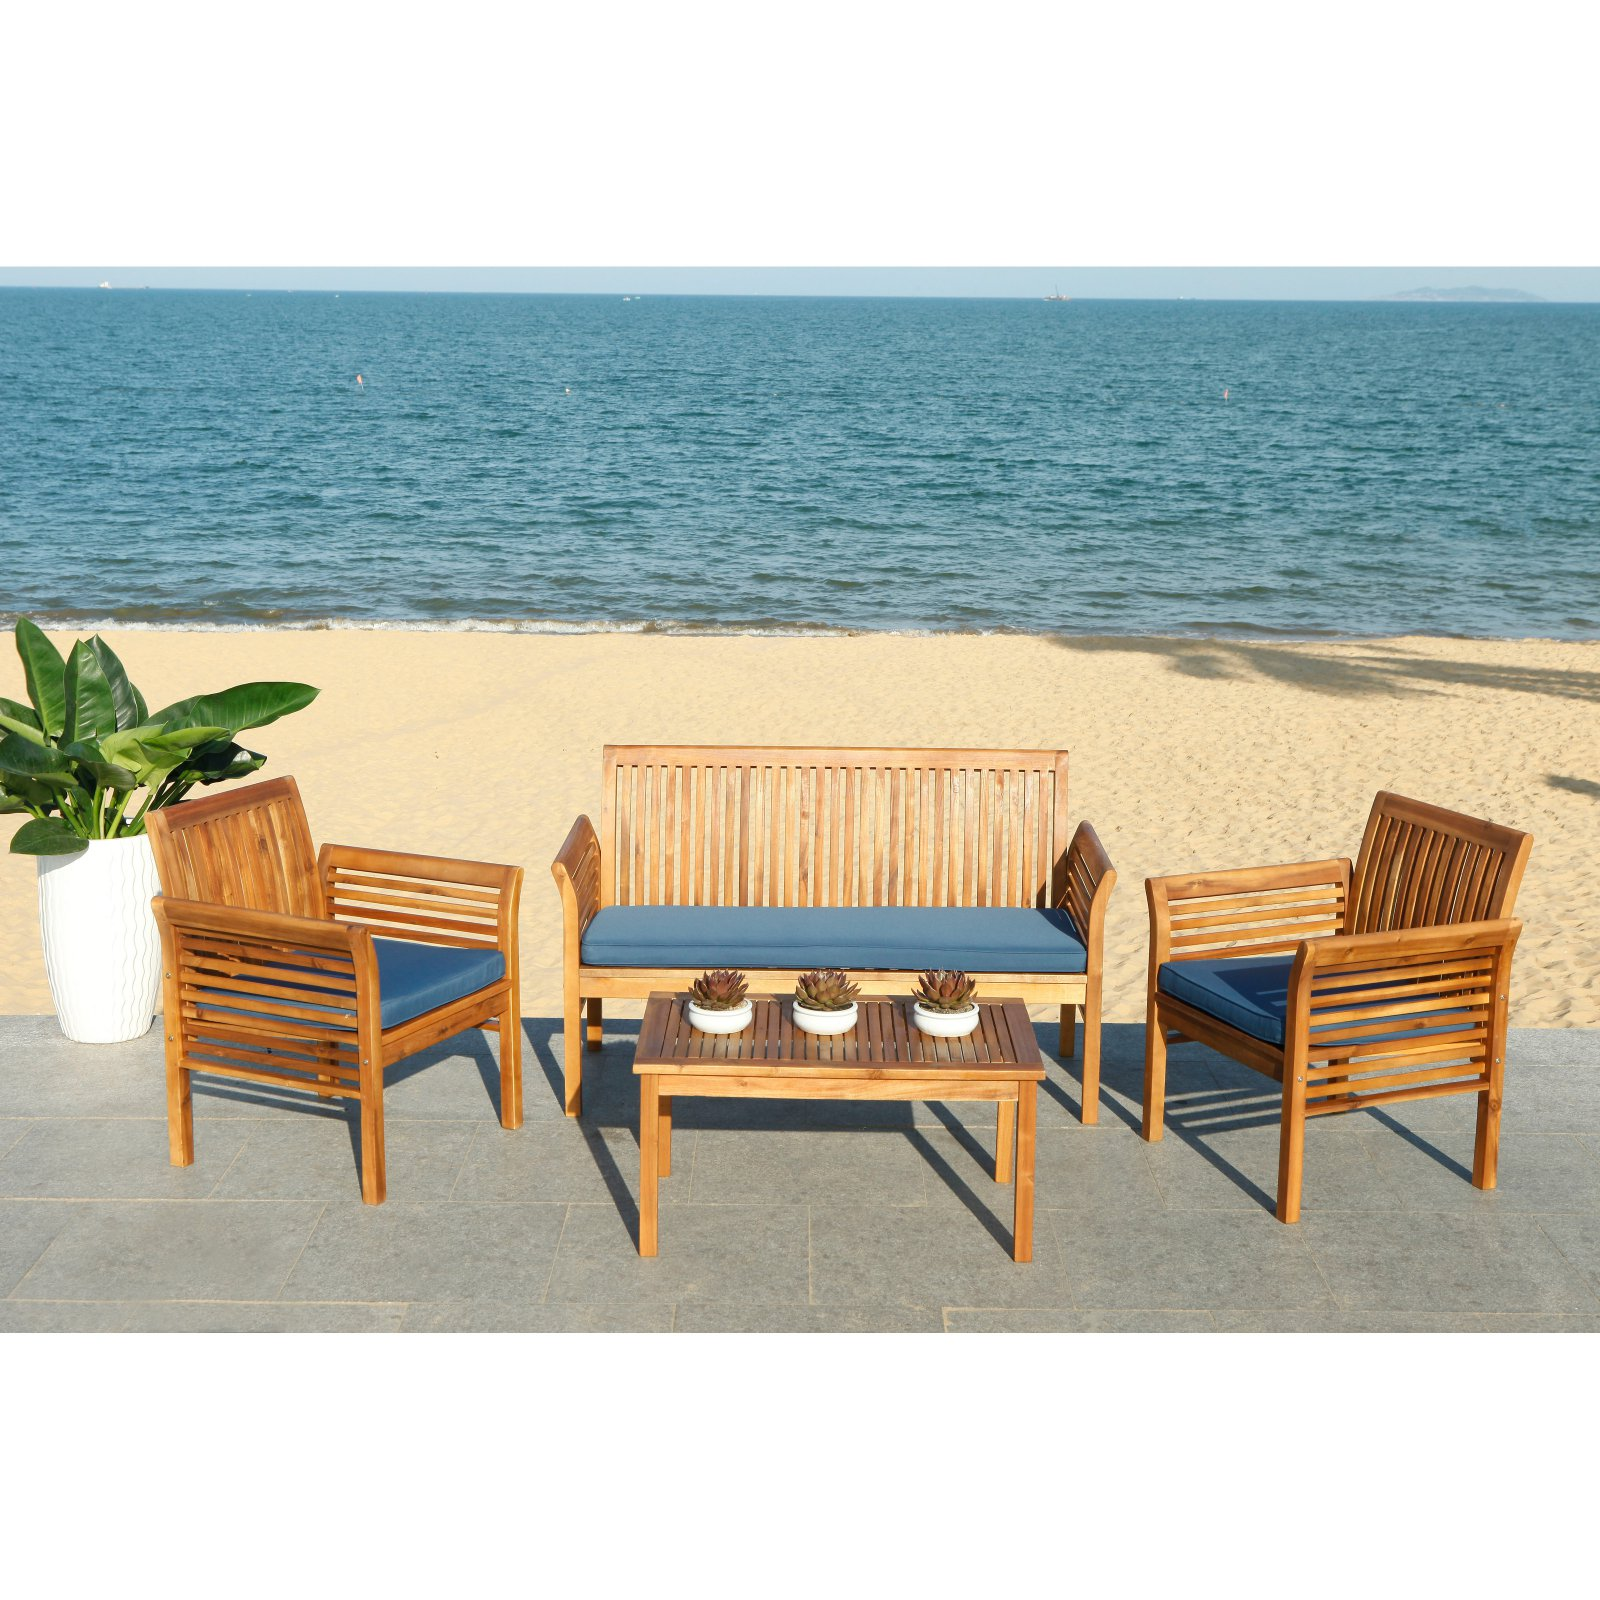 Safavieh Carson Outdoor Contemporary 4 Piece Living Set with Cushion